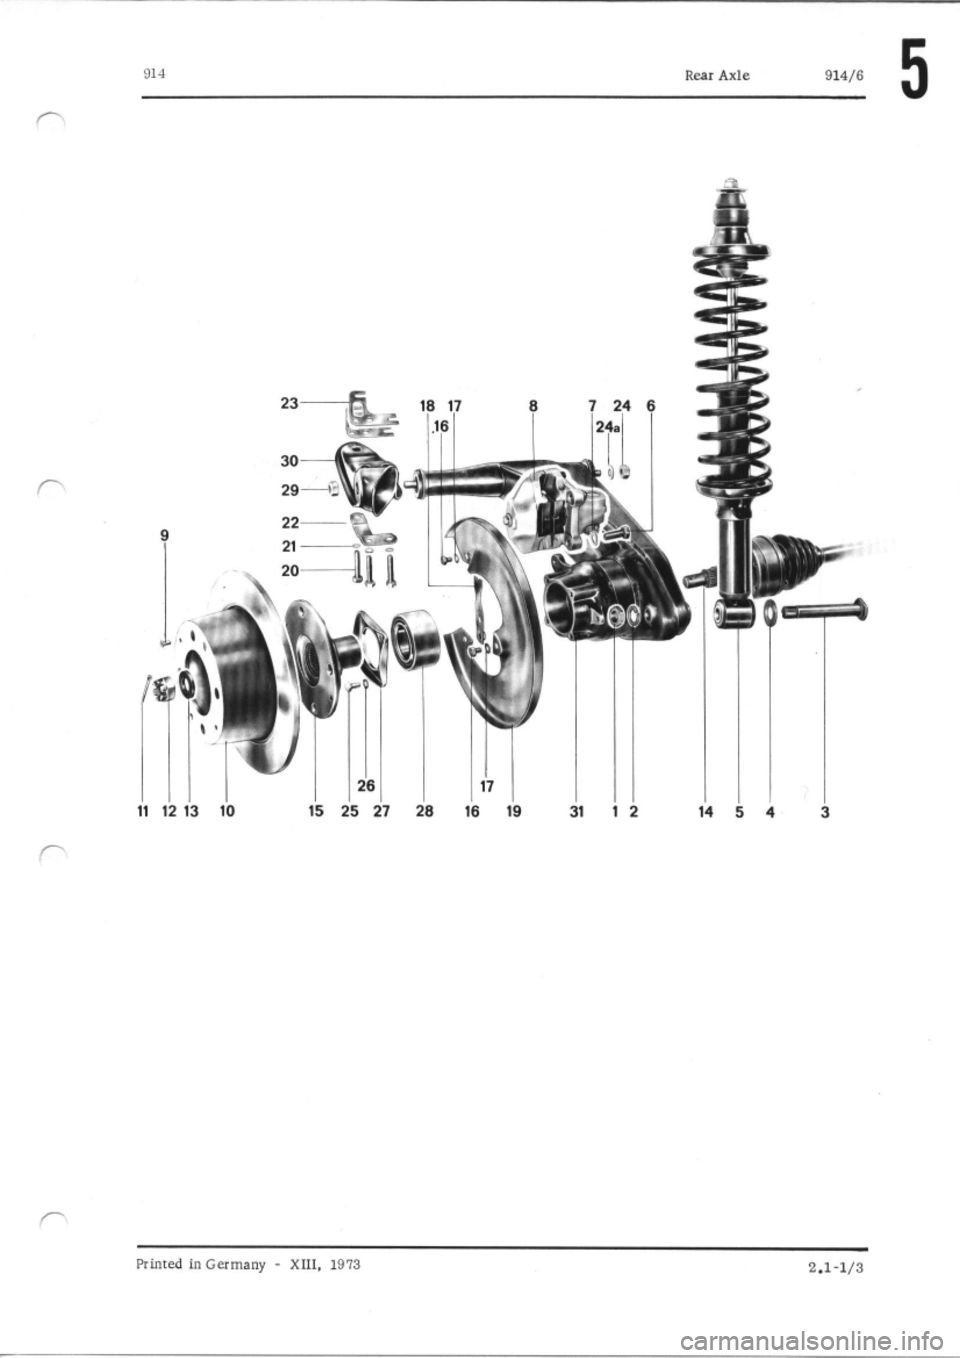 PORSCHE 914 1976 1.G Rear Axle Workshop Manual